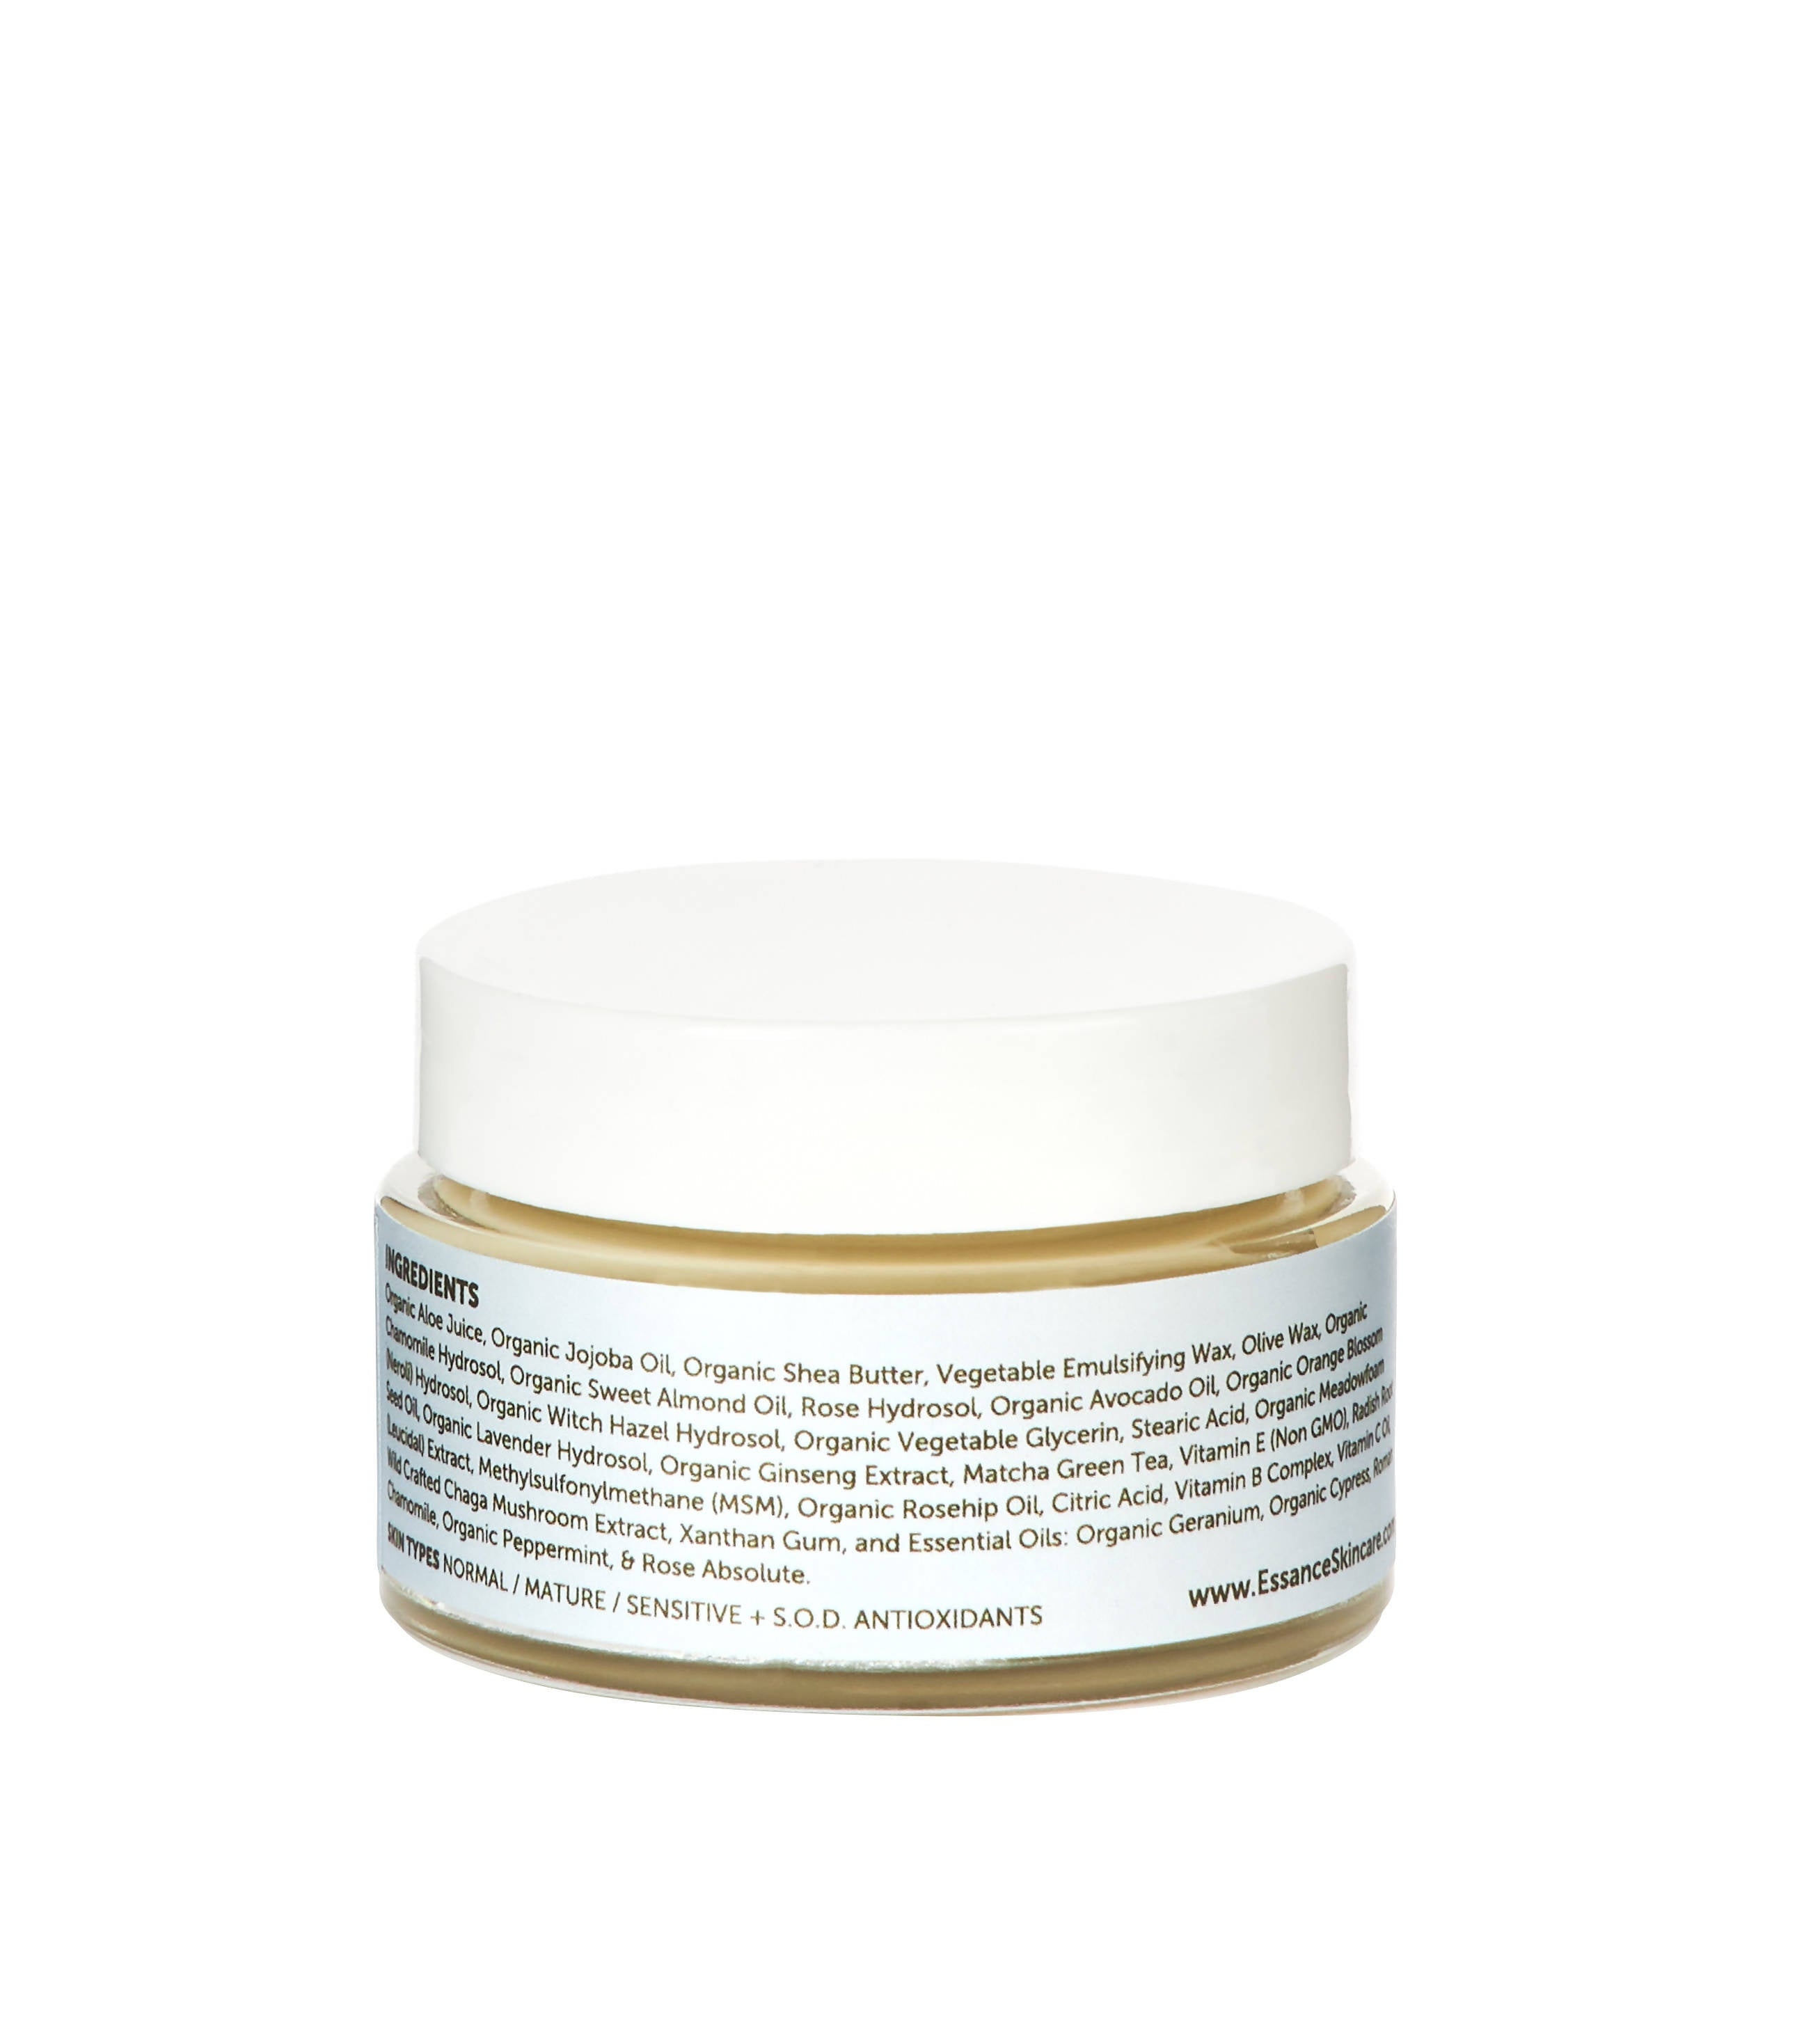 3-in-1 Antioxidant Eye Creme